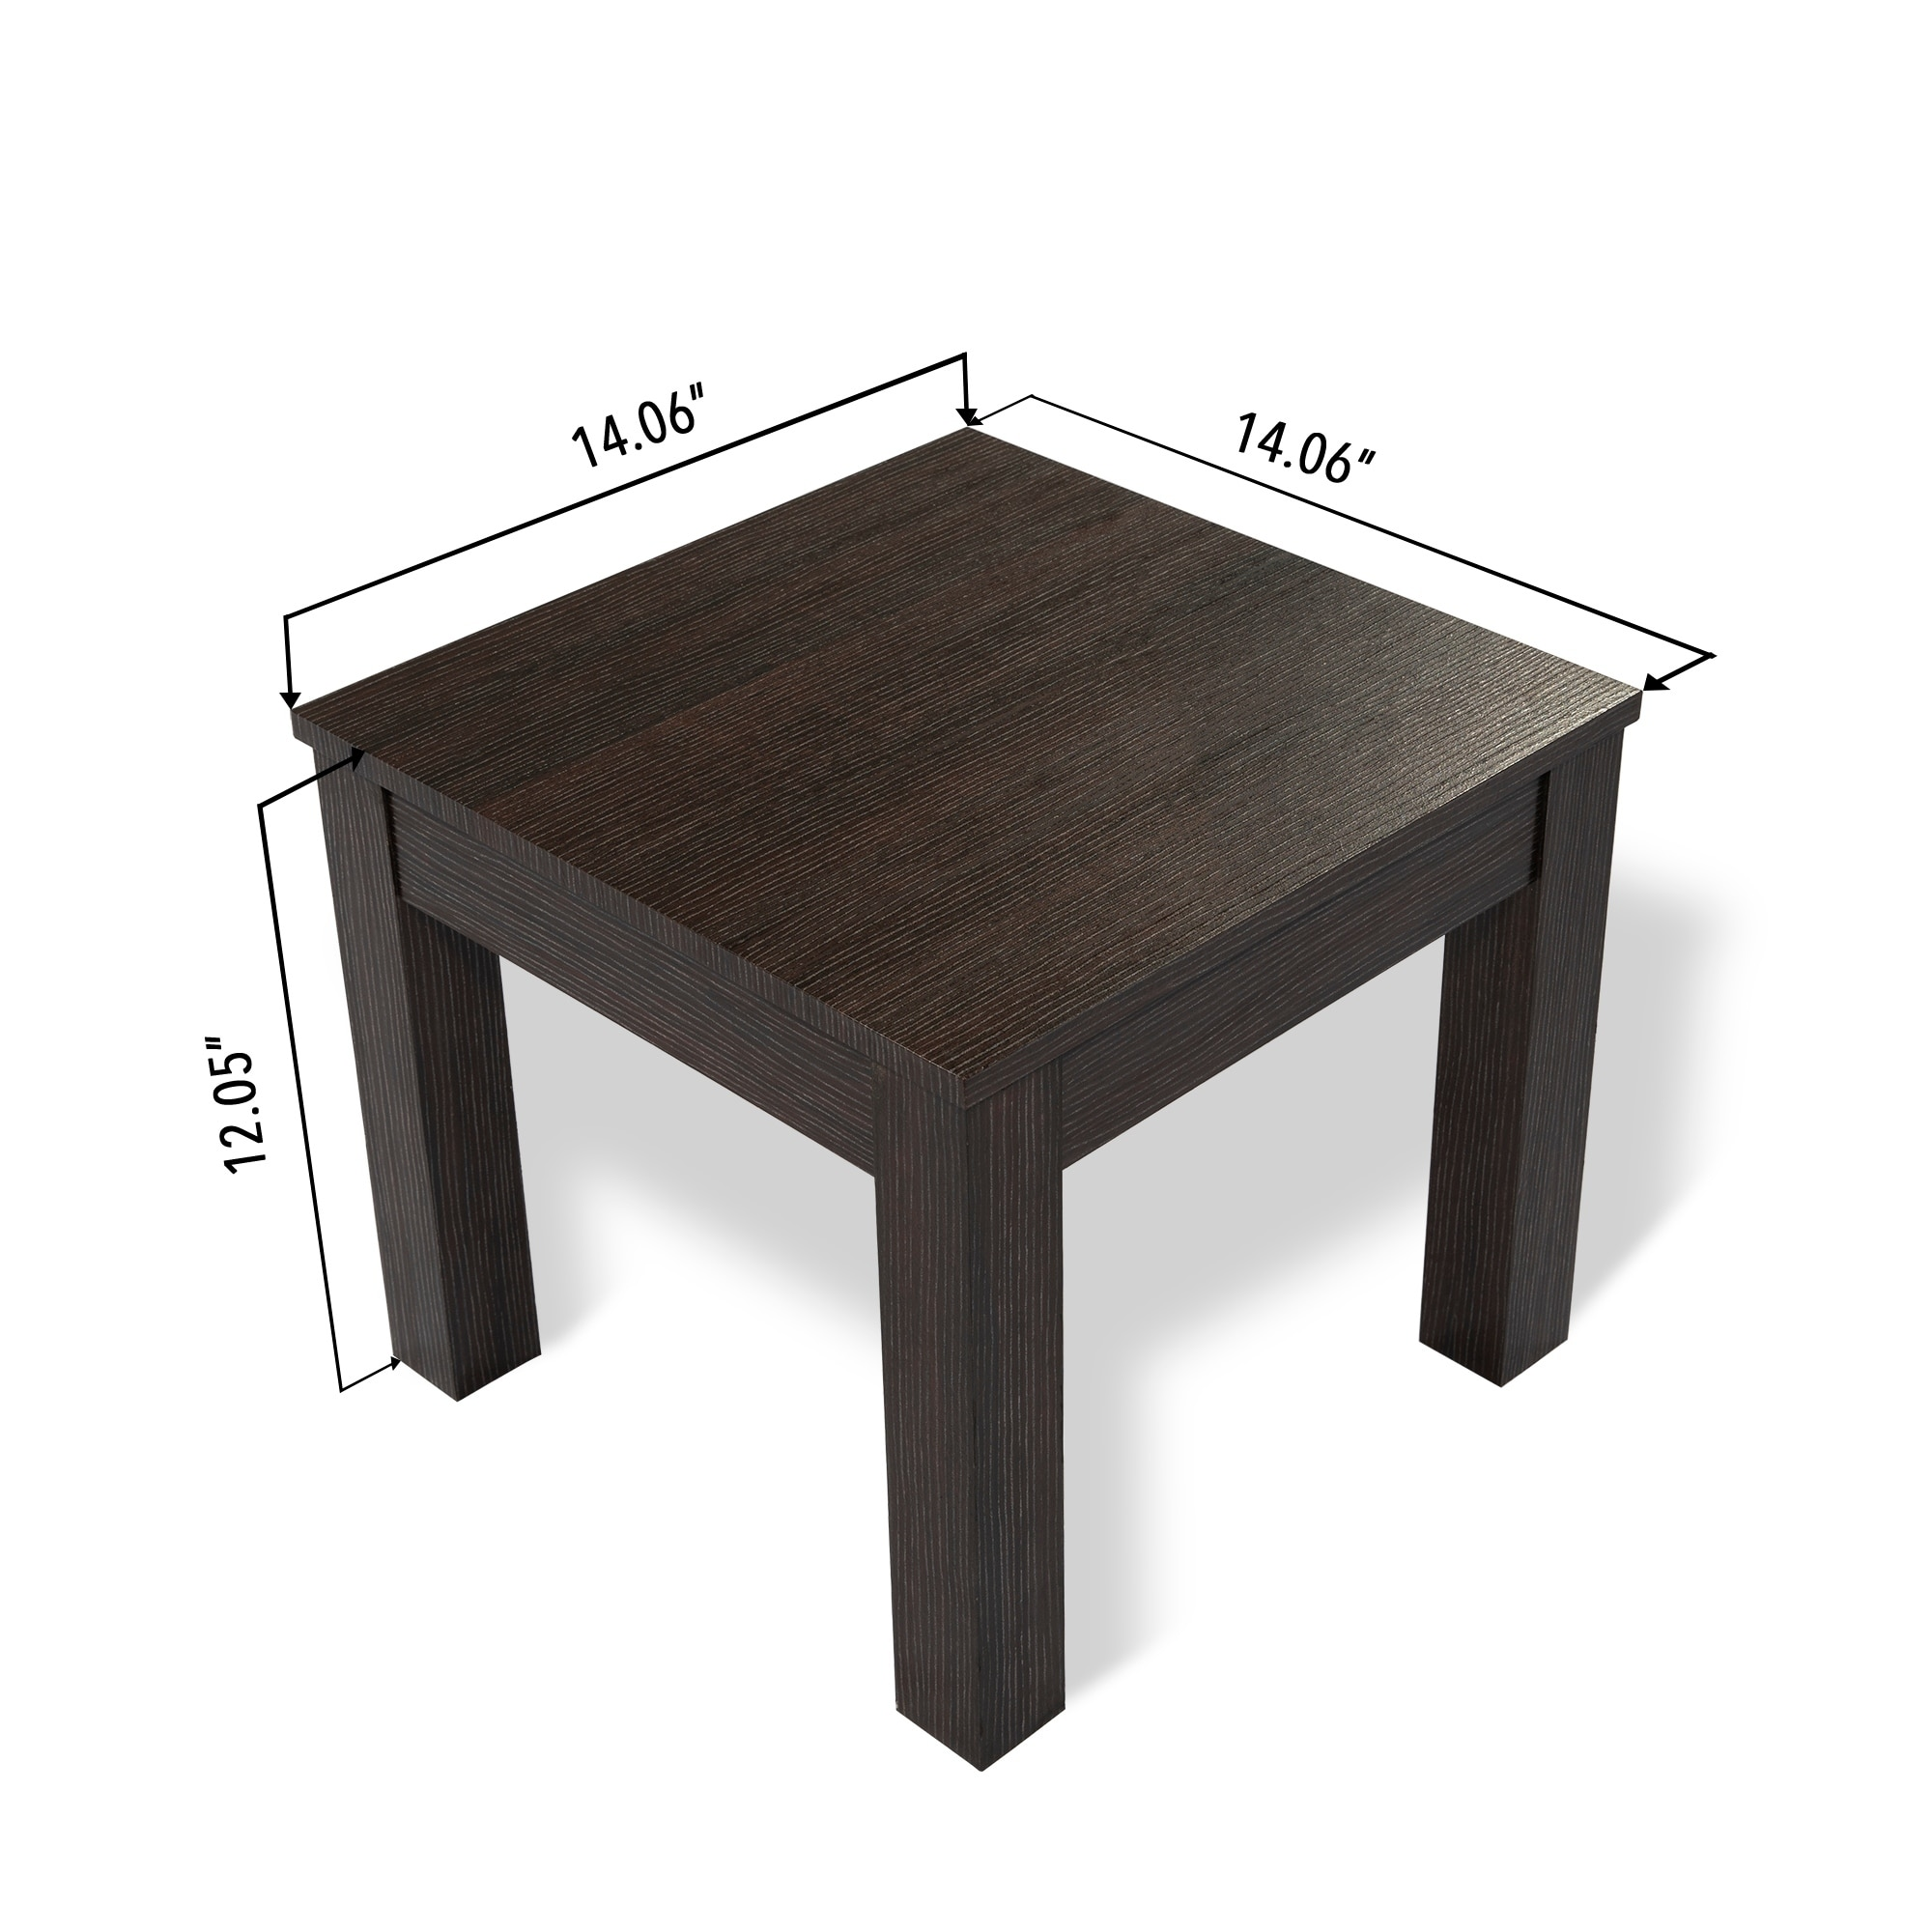 Mundy Dark Cherry Finish Coffee Table With Cushioned Stools Set Of 5 31 5l X 5w 17 72h On Free Shipping Today